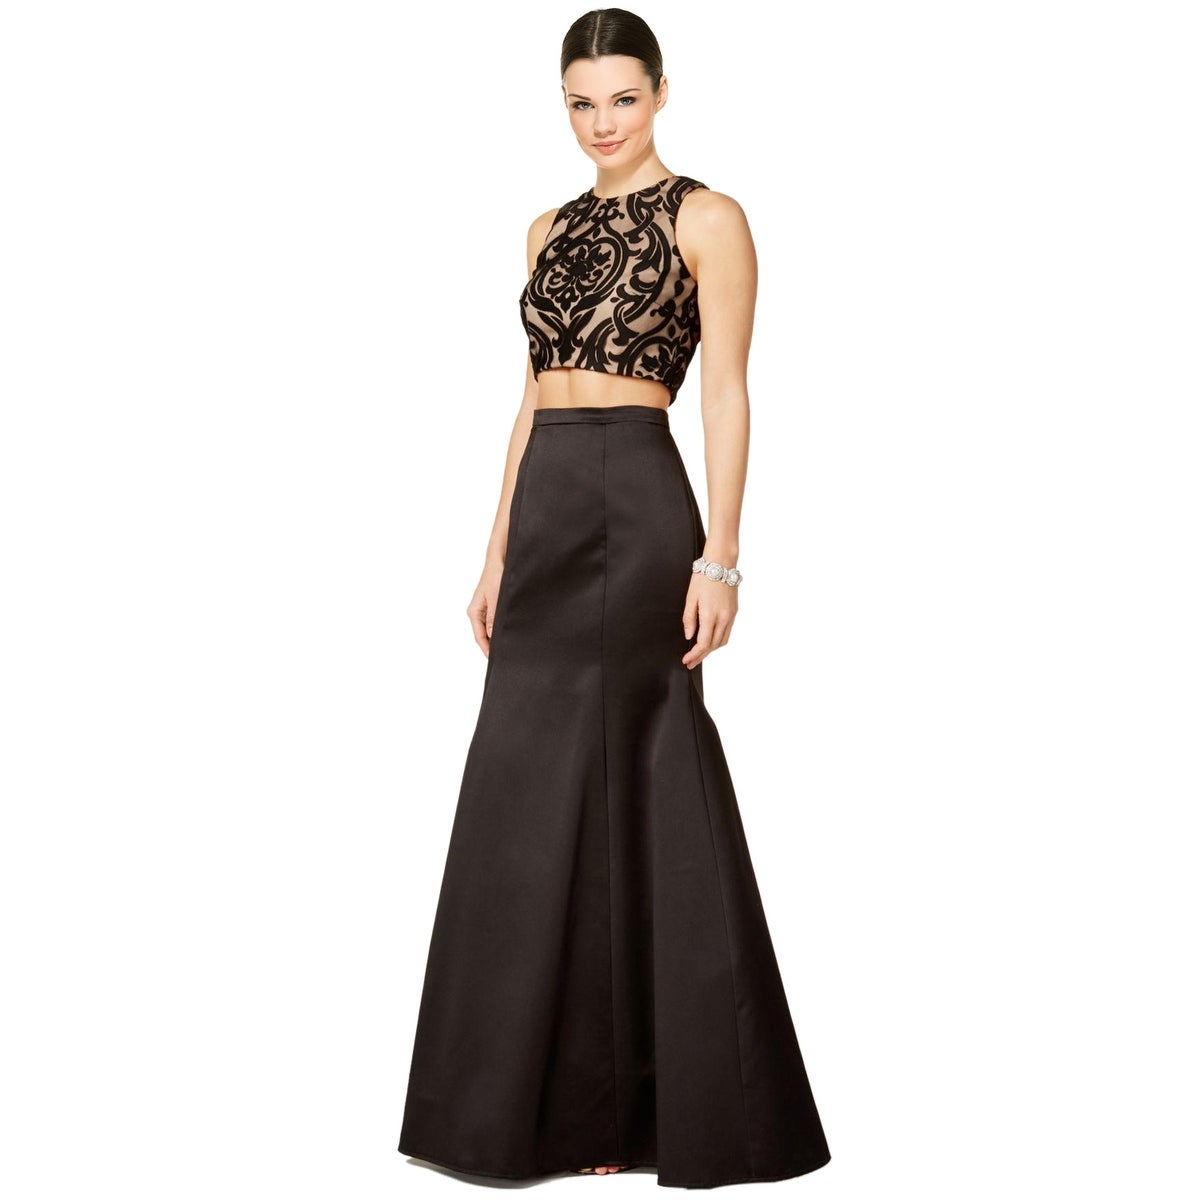 7305d772ddd115 Shop Xscape 2pc Lace Satin Evening Gown Dress - Free Shipping Today -  Overstock - 19986370